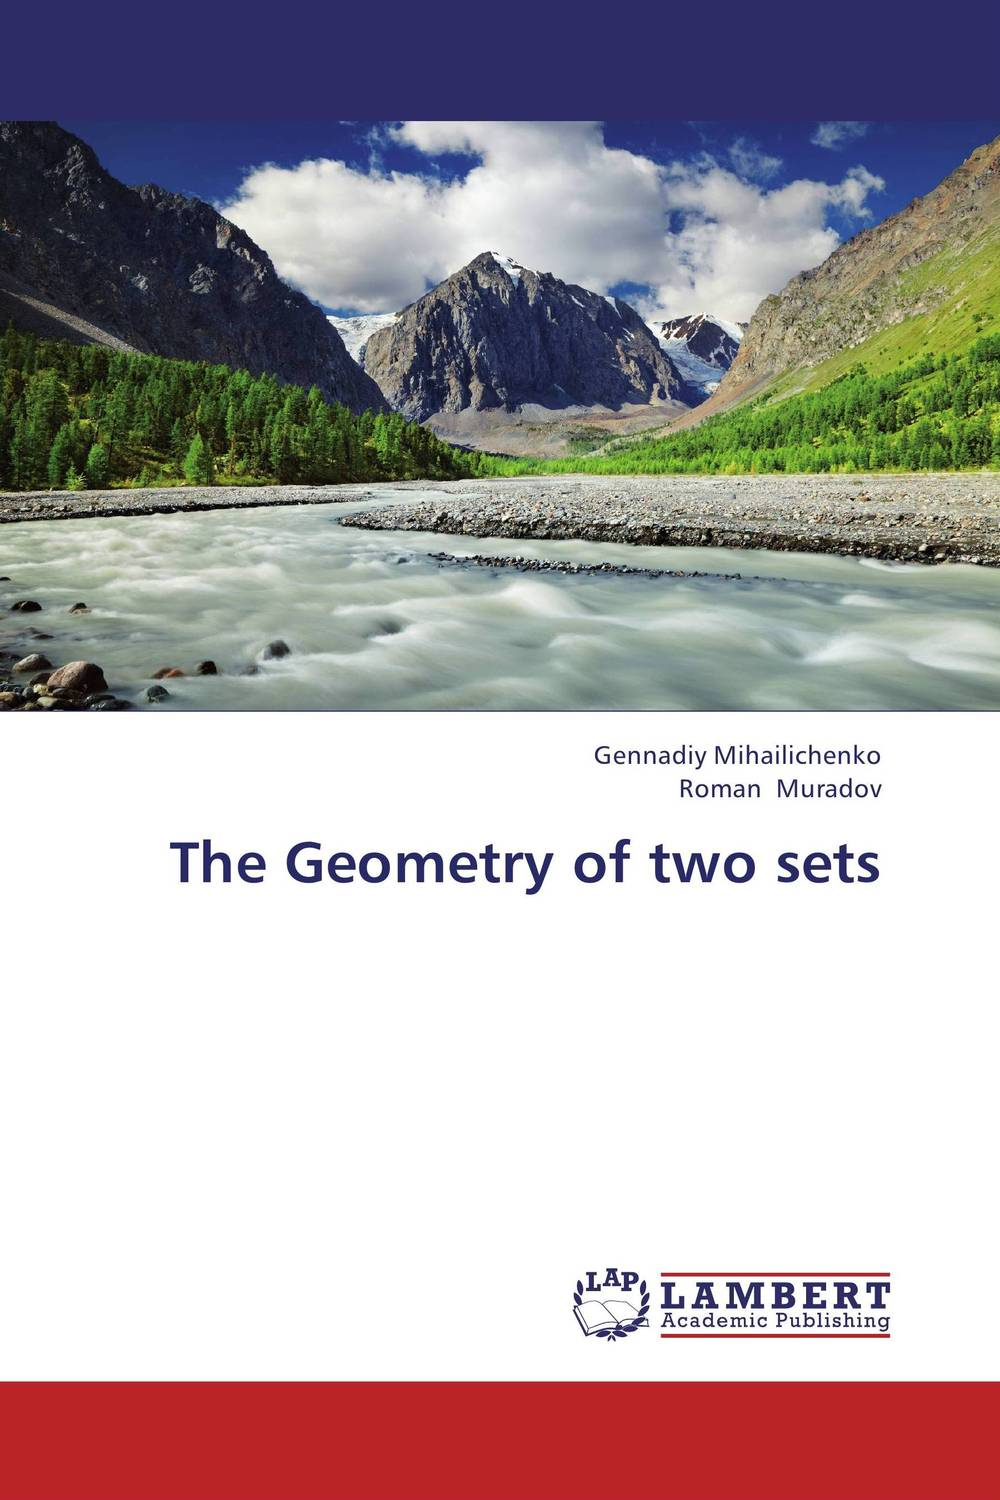 The Geometry of two sets